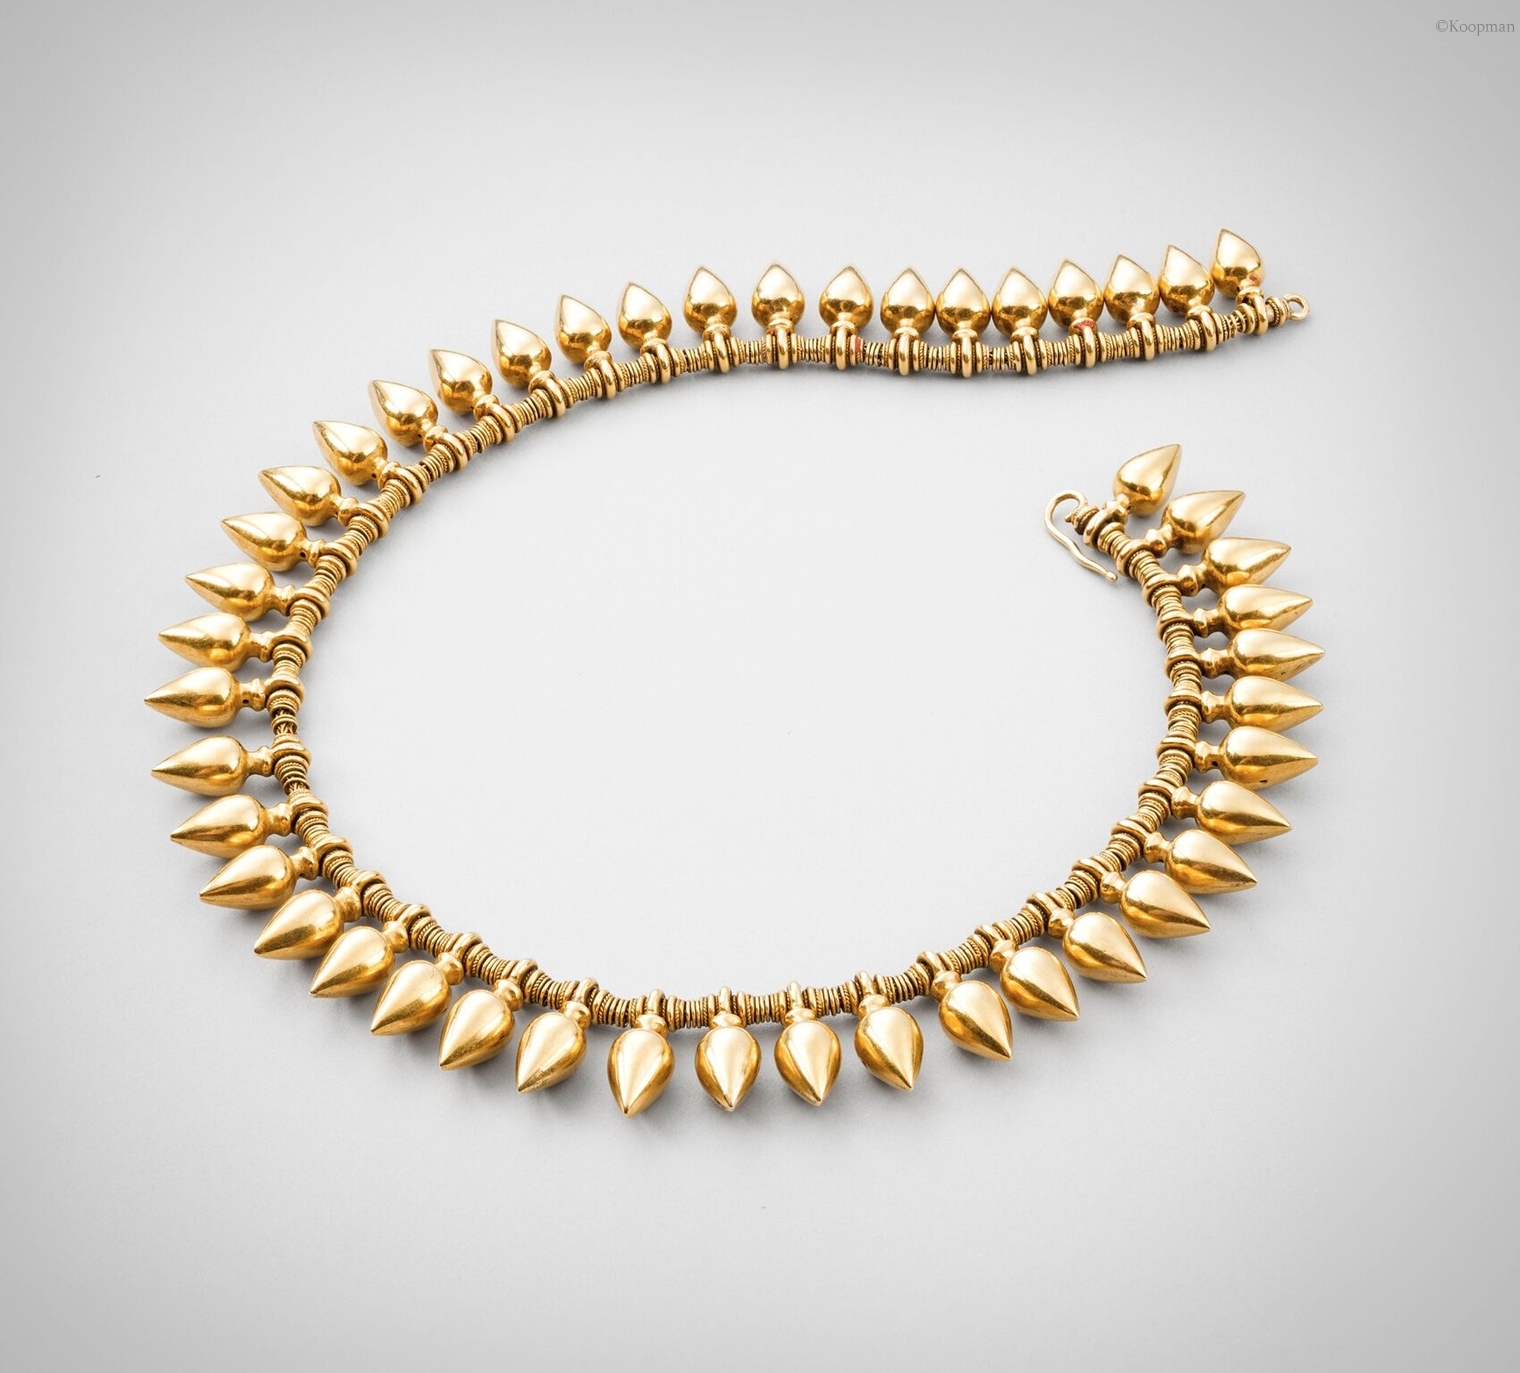 A 19th Century Gold Archaeological Revival Droplet Fringe Necklace